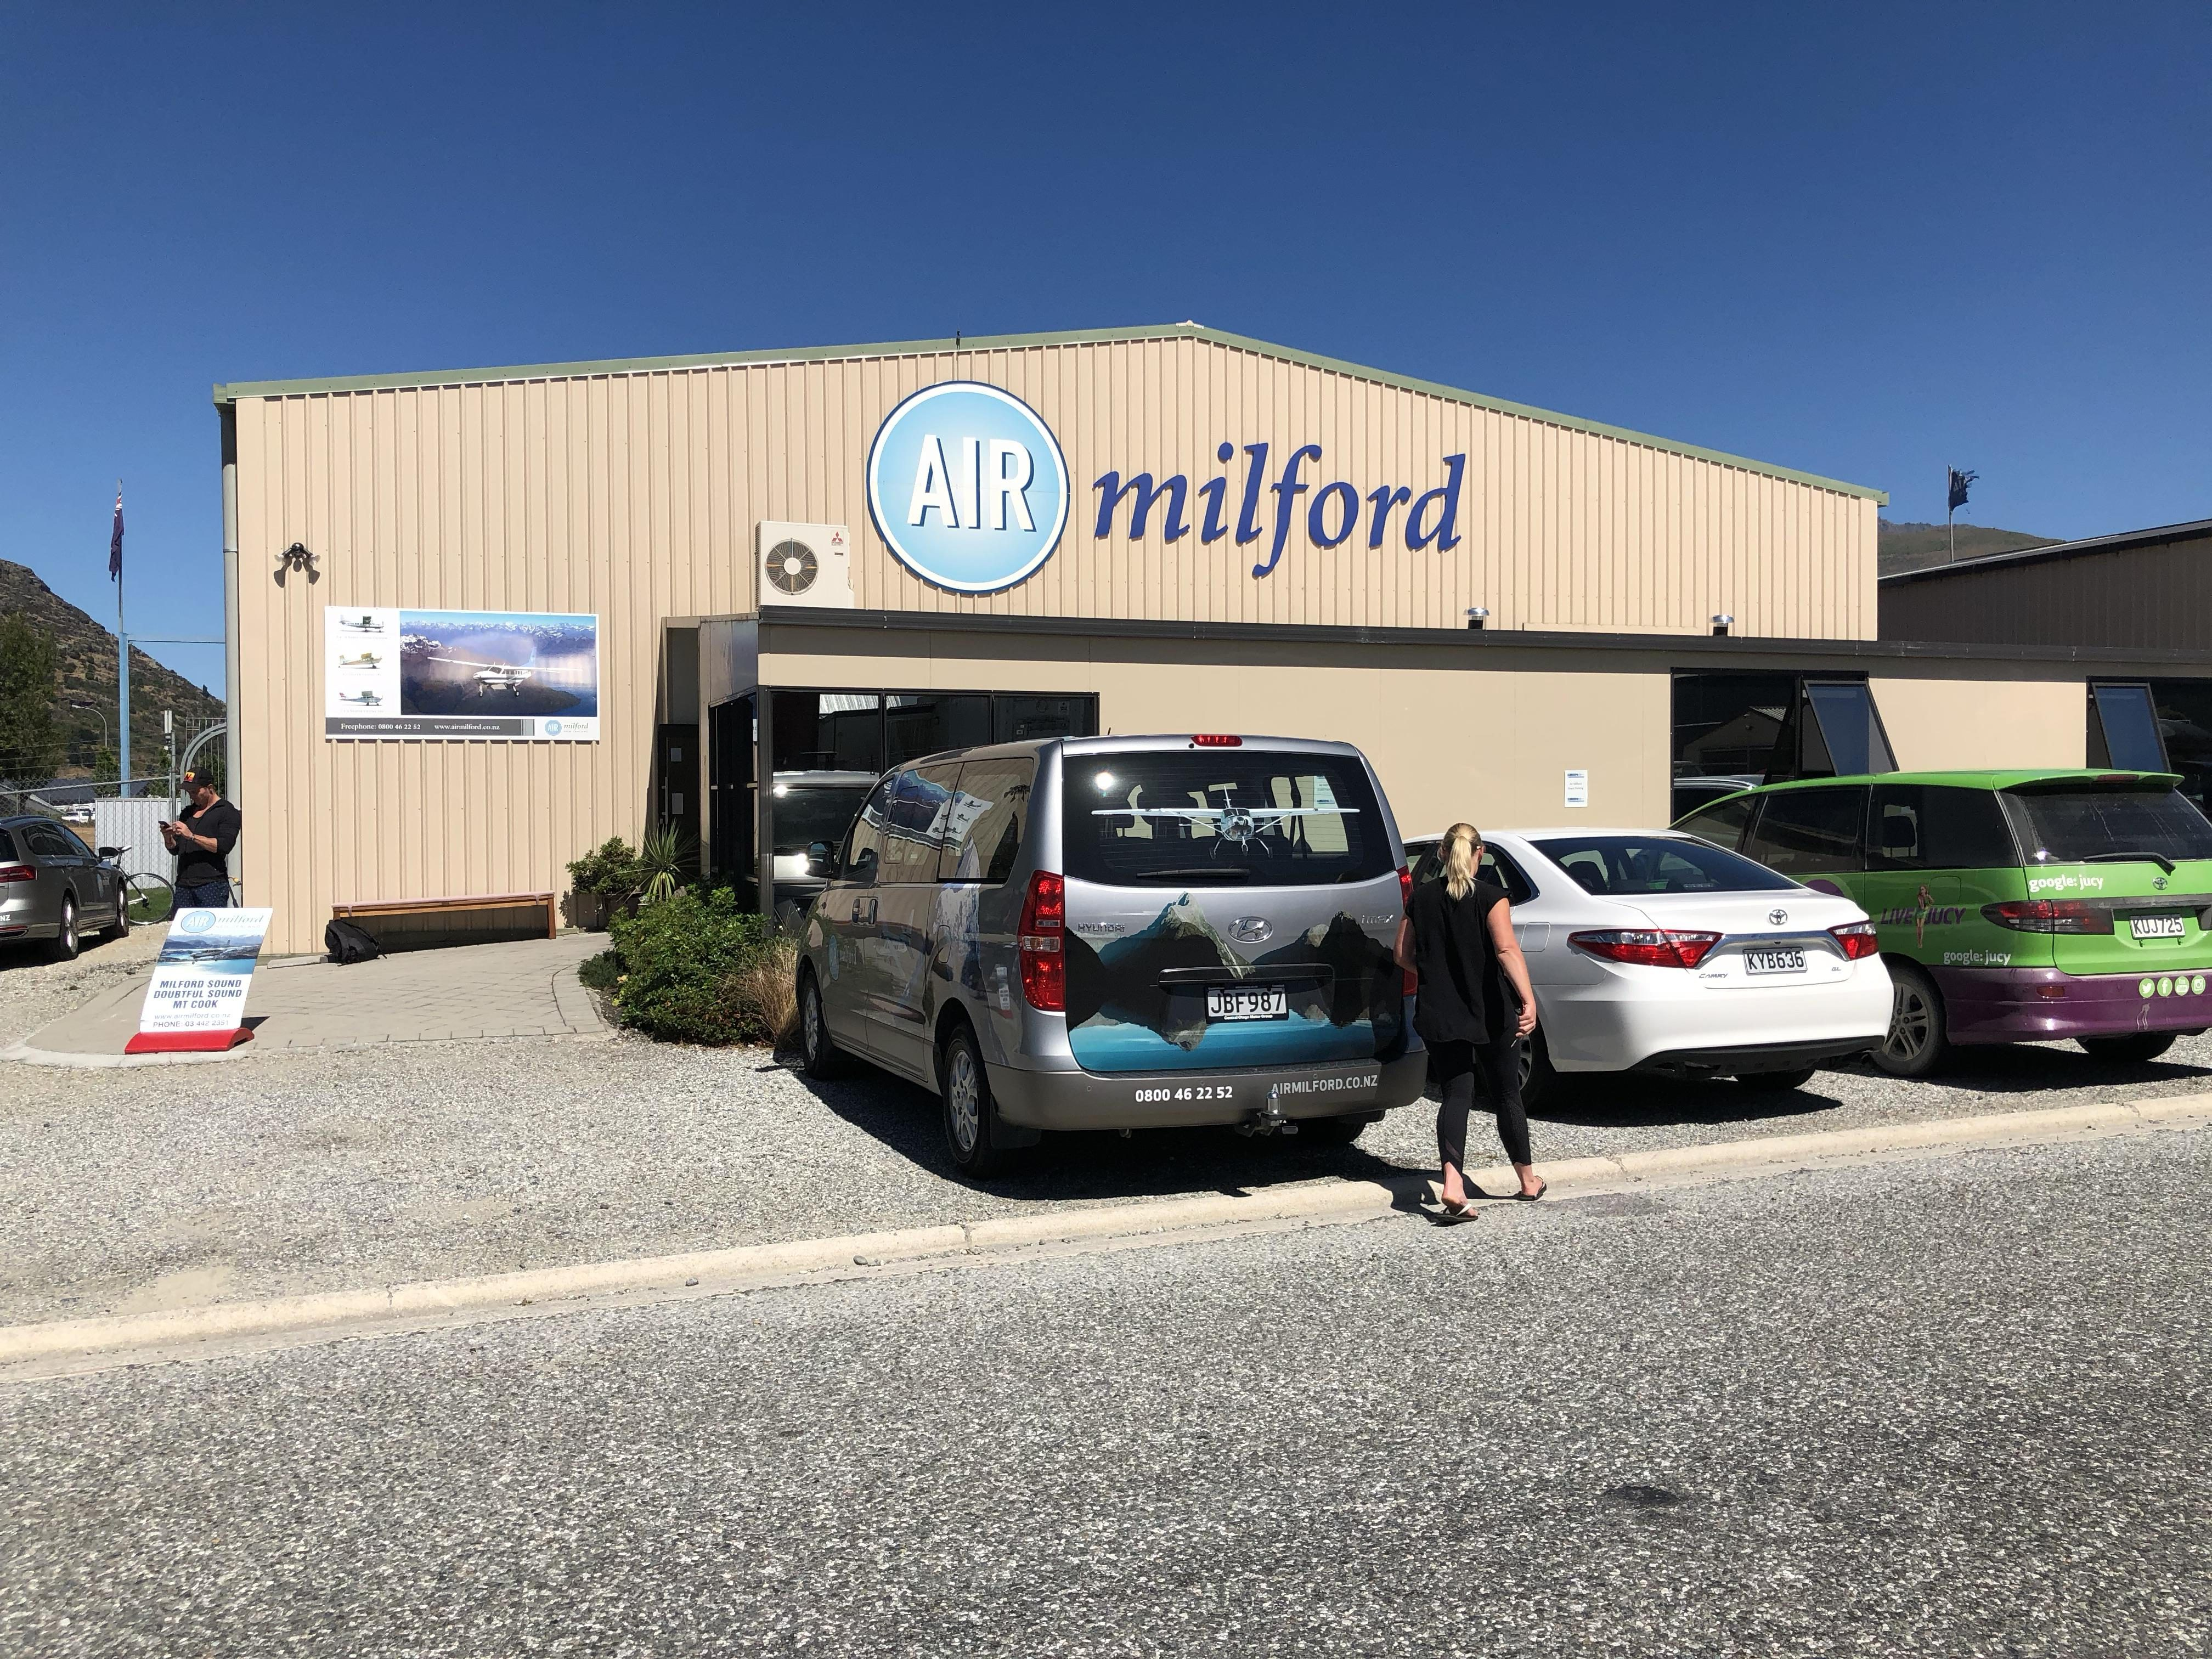 Air Milford offices